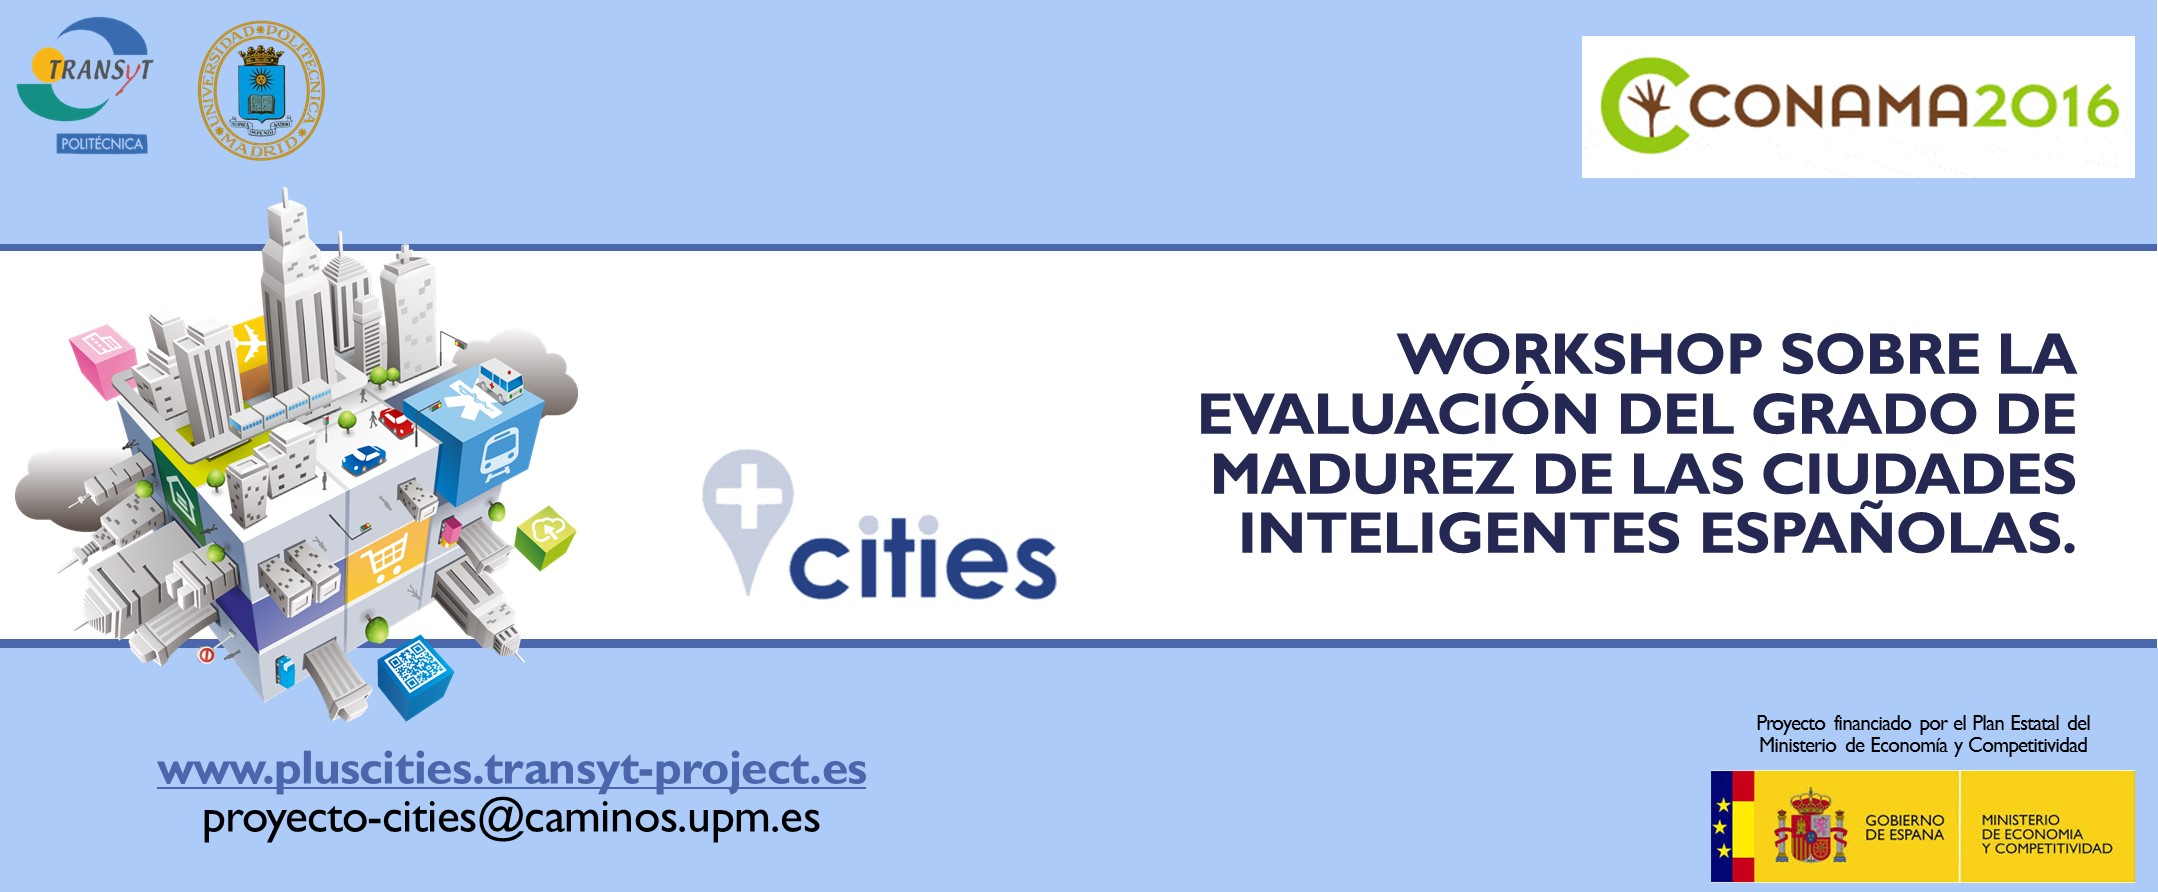 noticia workshop pluscities big 201611